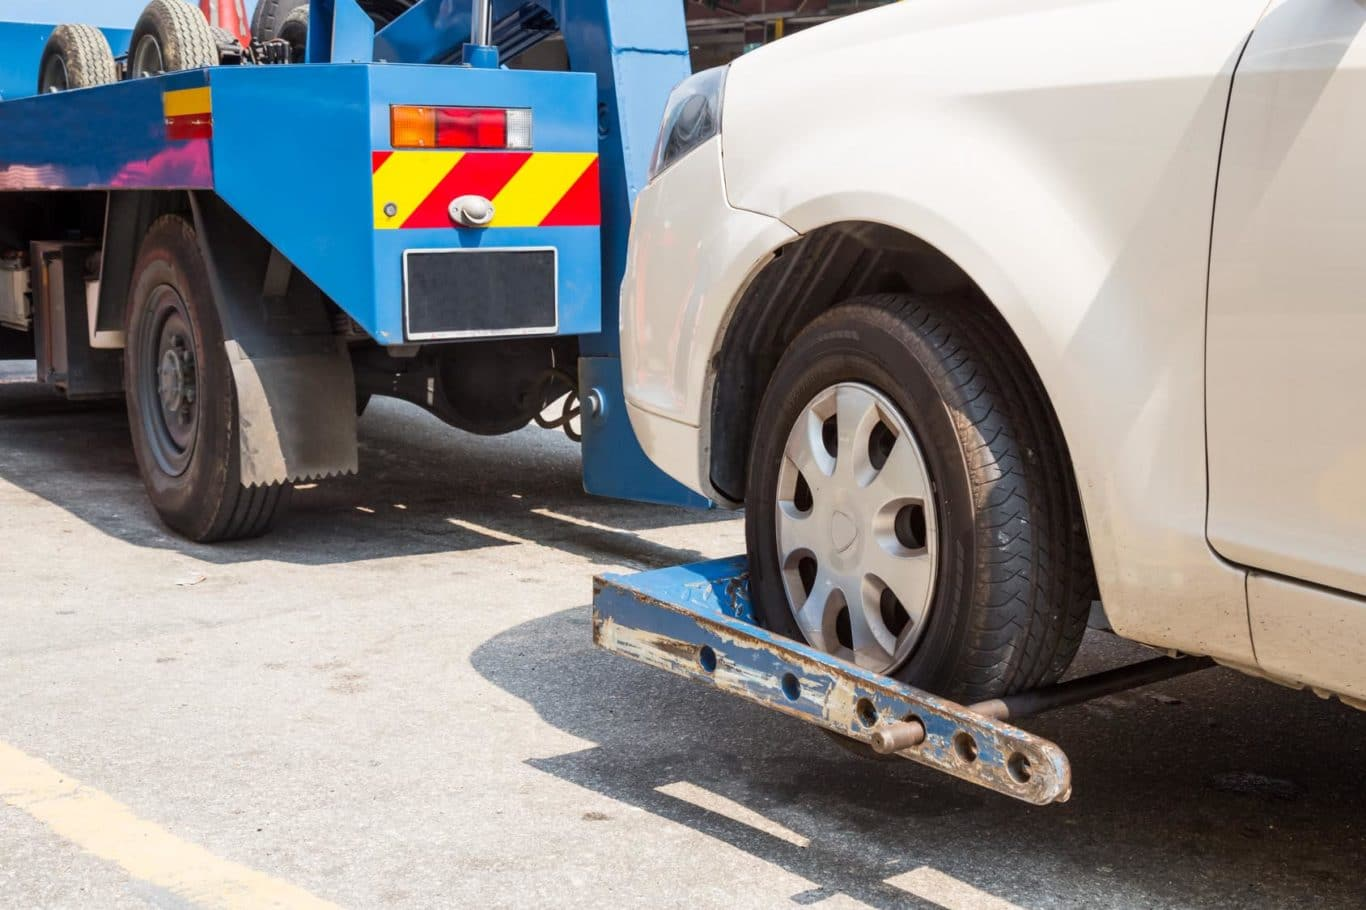 Jenkinstown, County Louth expert Car Recovery services